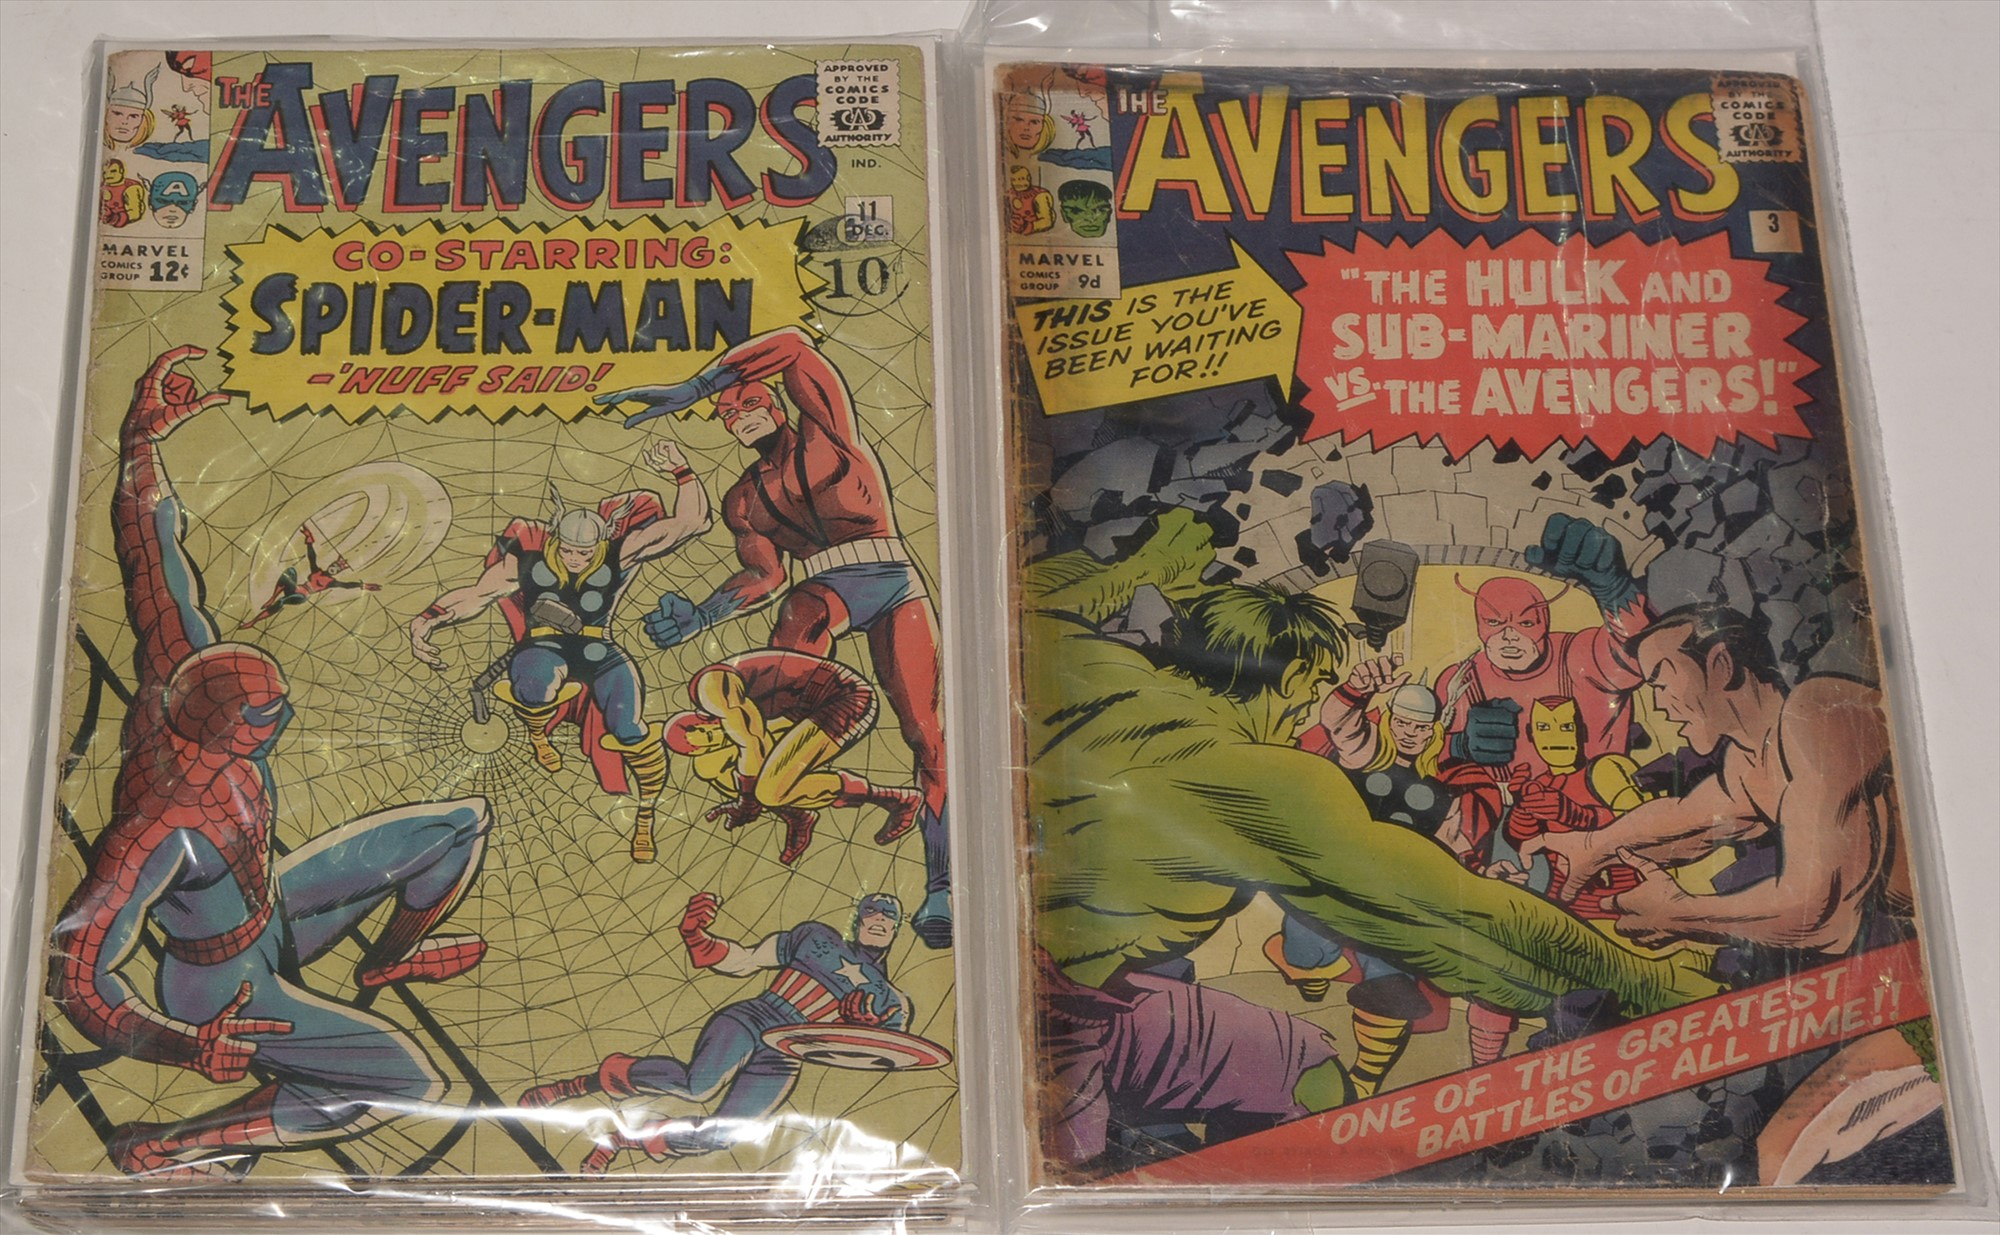 The Avengers No's. 3, 5, 11, 13, 14, 17 and 18 - Image 2 of 7